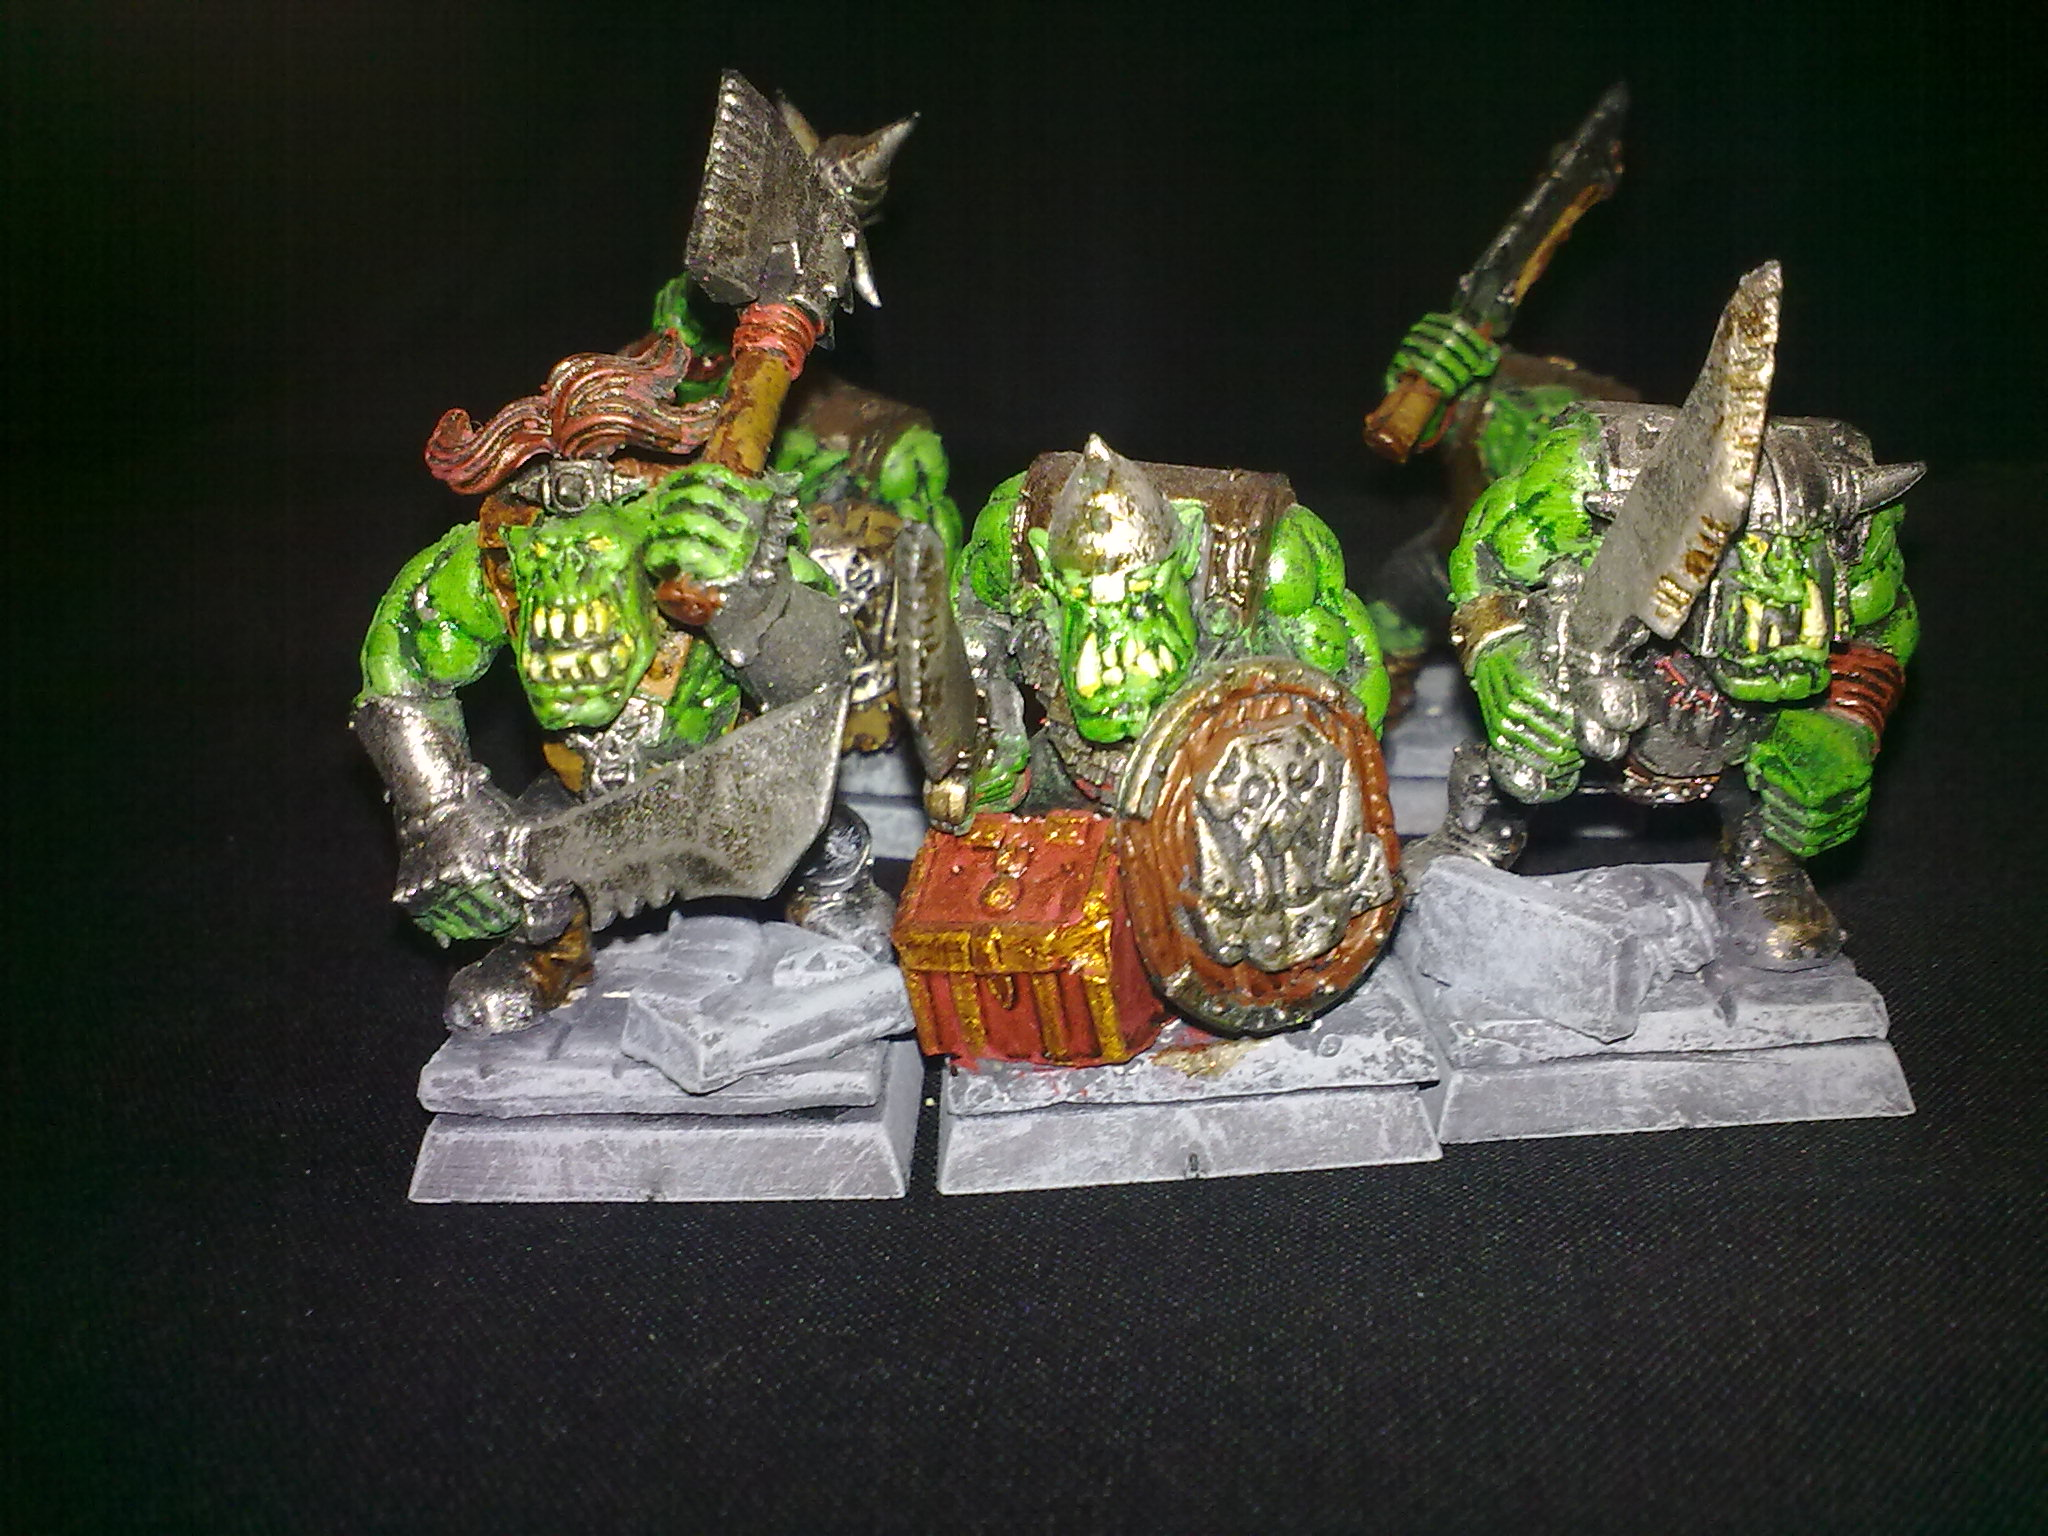 Close-up of the Orcs, the customised bases are made from spare parts from Warhammer models and custom molds